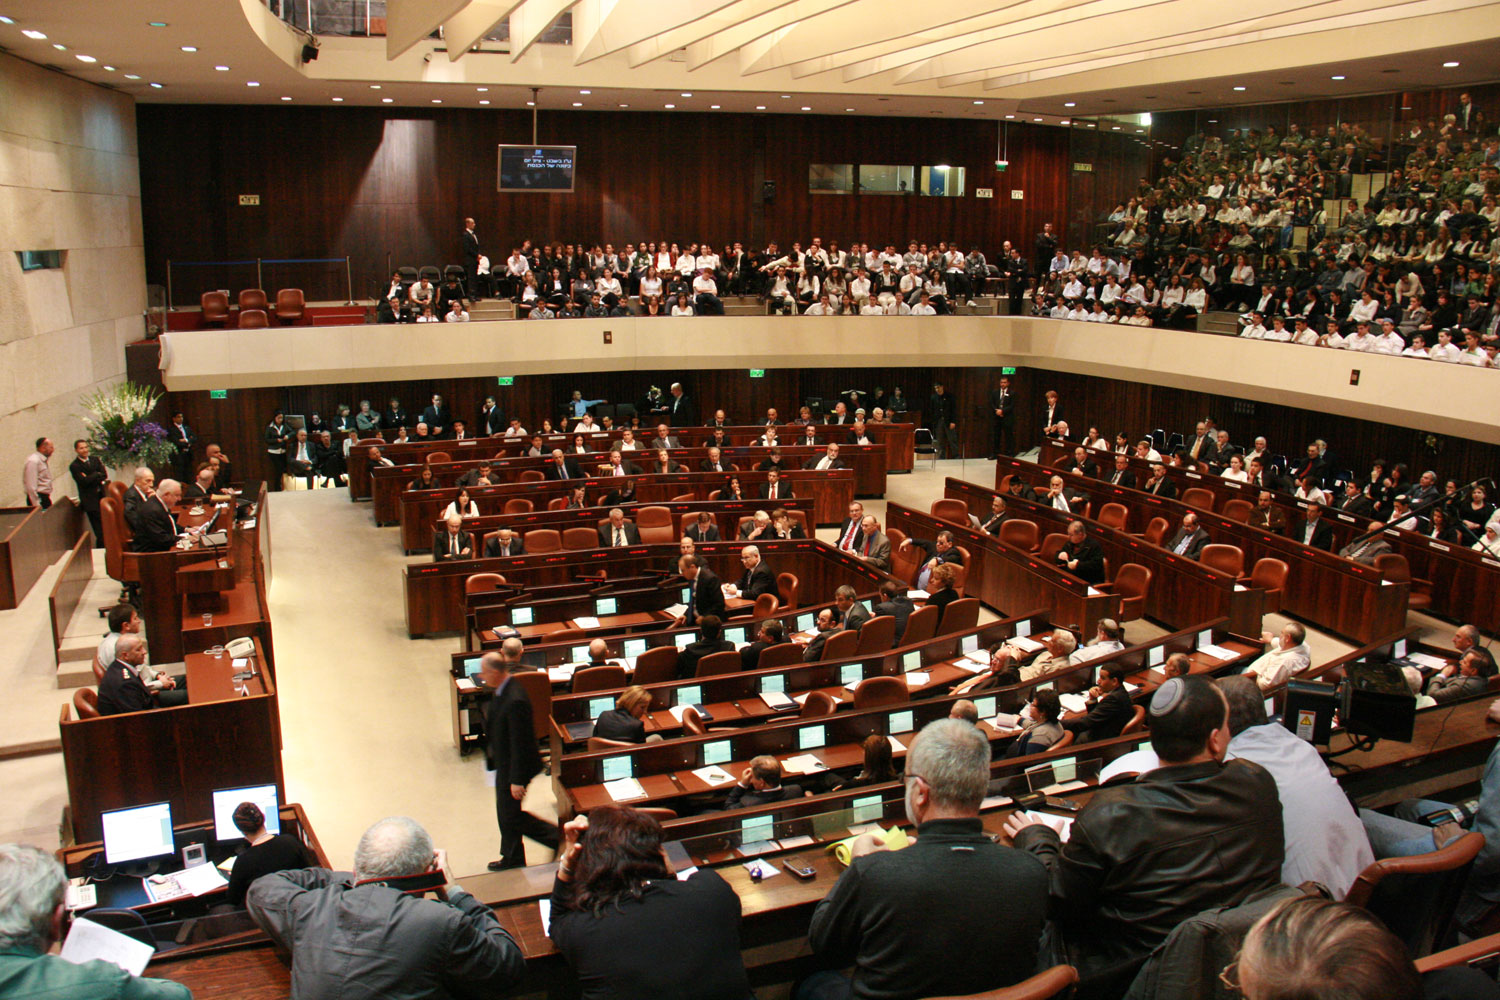 The 2013 Knesset has already proposed dozens of discriminatory bills in its first few months.